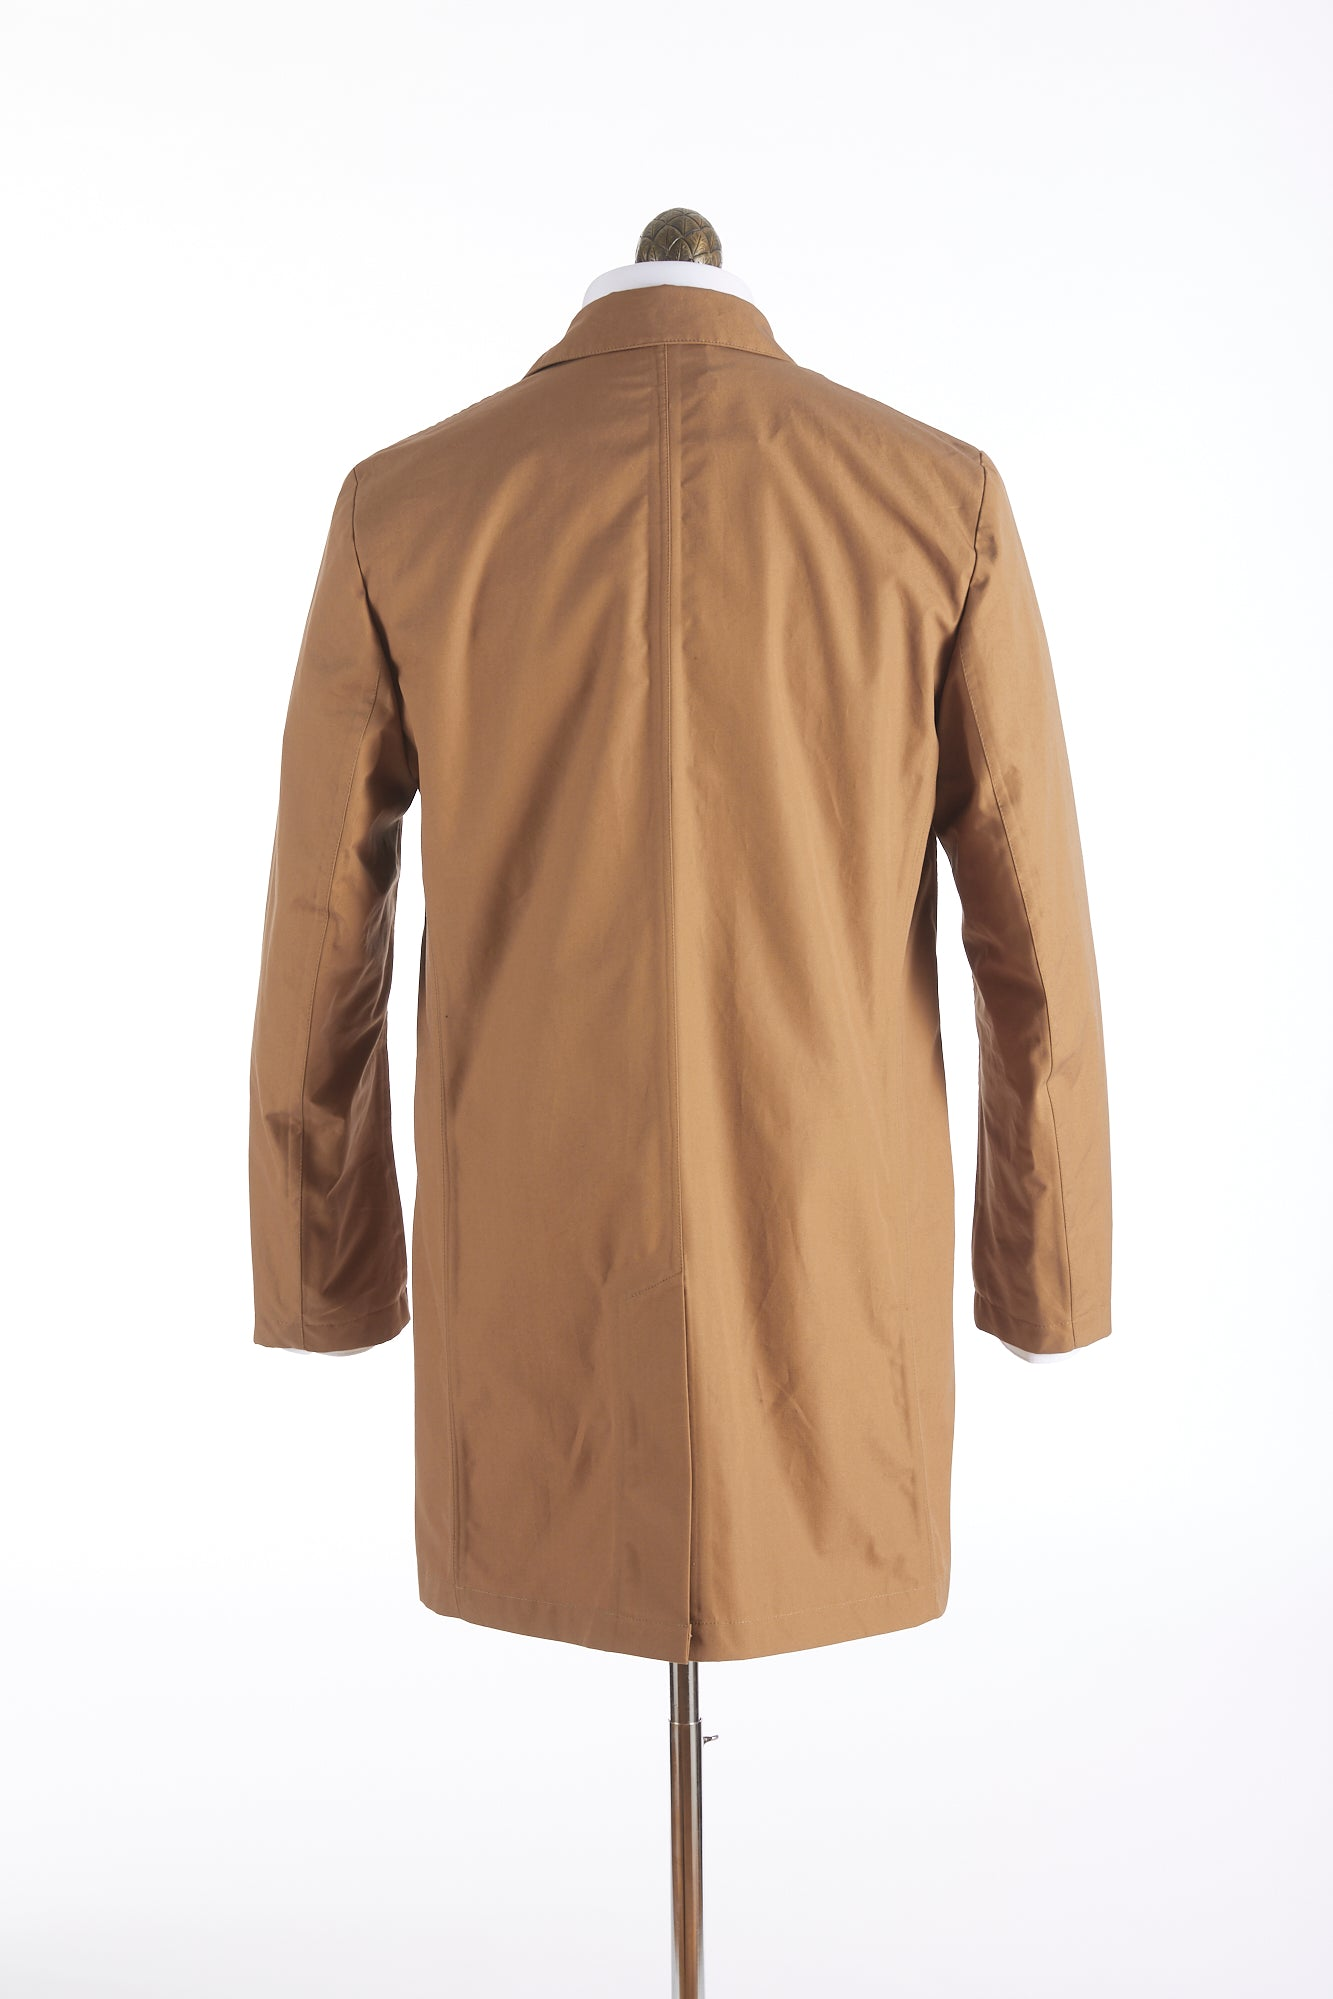 Private White V.C. Tan Cotton Ventile® Unlined Mac Coat Back